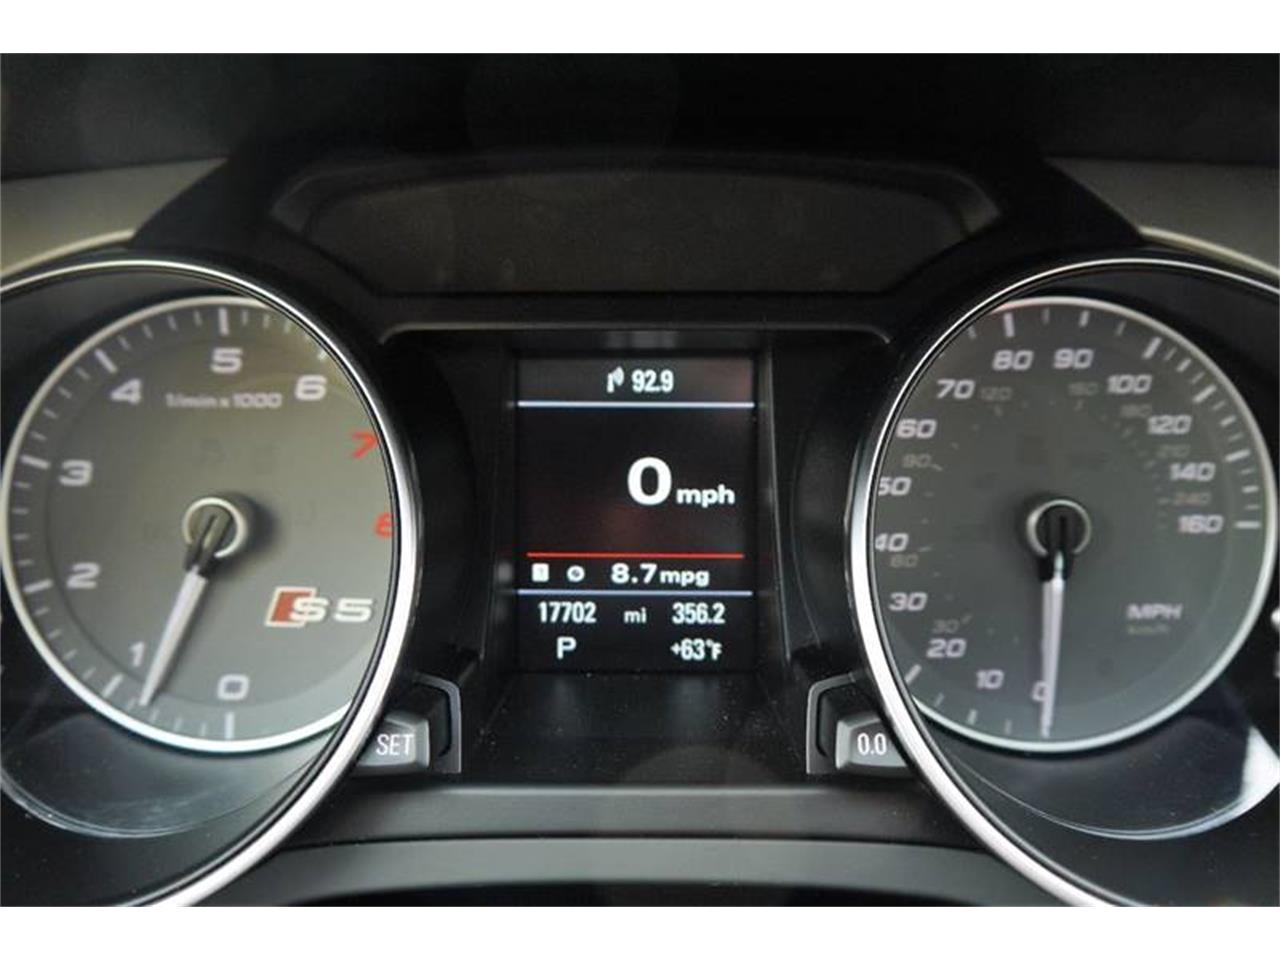 Large Picture of '15 Audi S5 located in Tennessee - $45,800.00 - MOD5